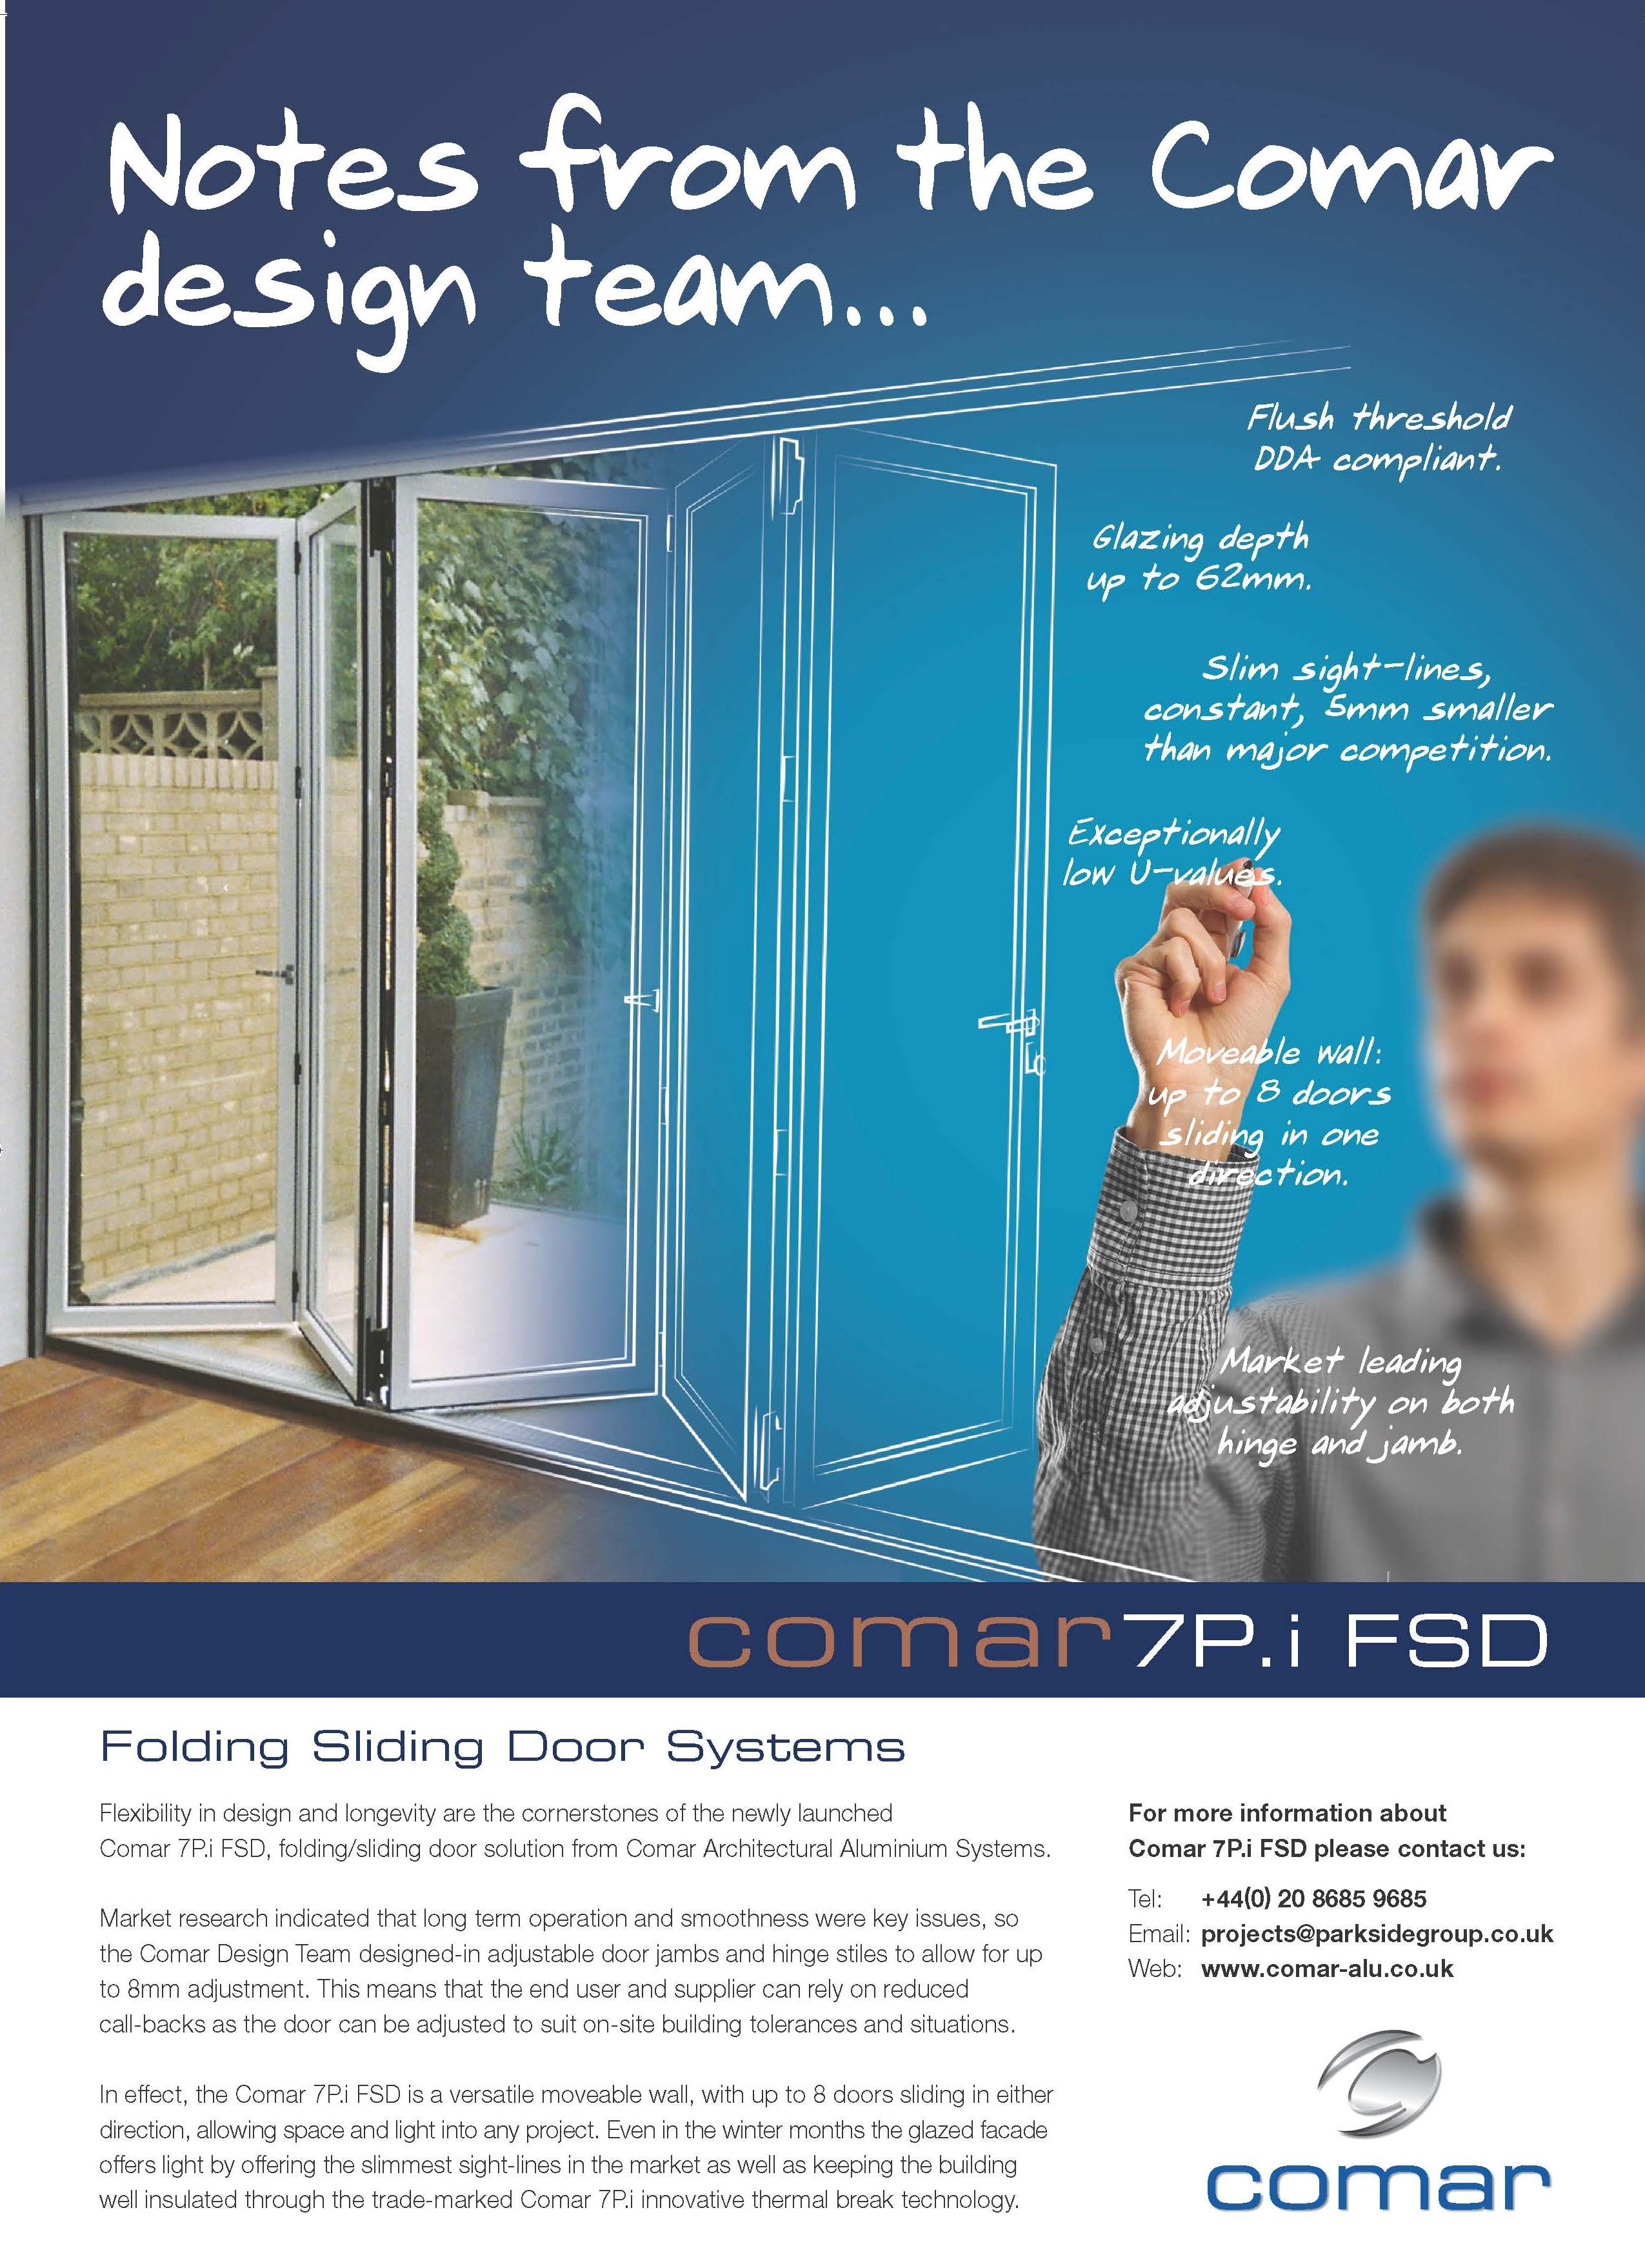 Comar\u0027s New Advertising C&aign \u2013 \u201cNotes from the Comar Design ...  sc 1 st  Comar Architectural Aluminium Systems & Folding Sliding Doors Archives - blog.comar-alu.co.uk